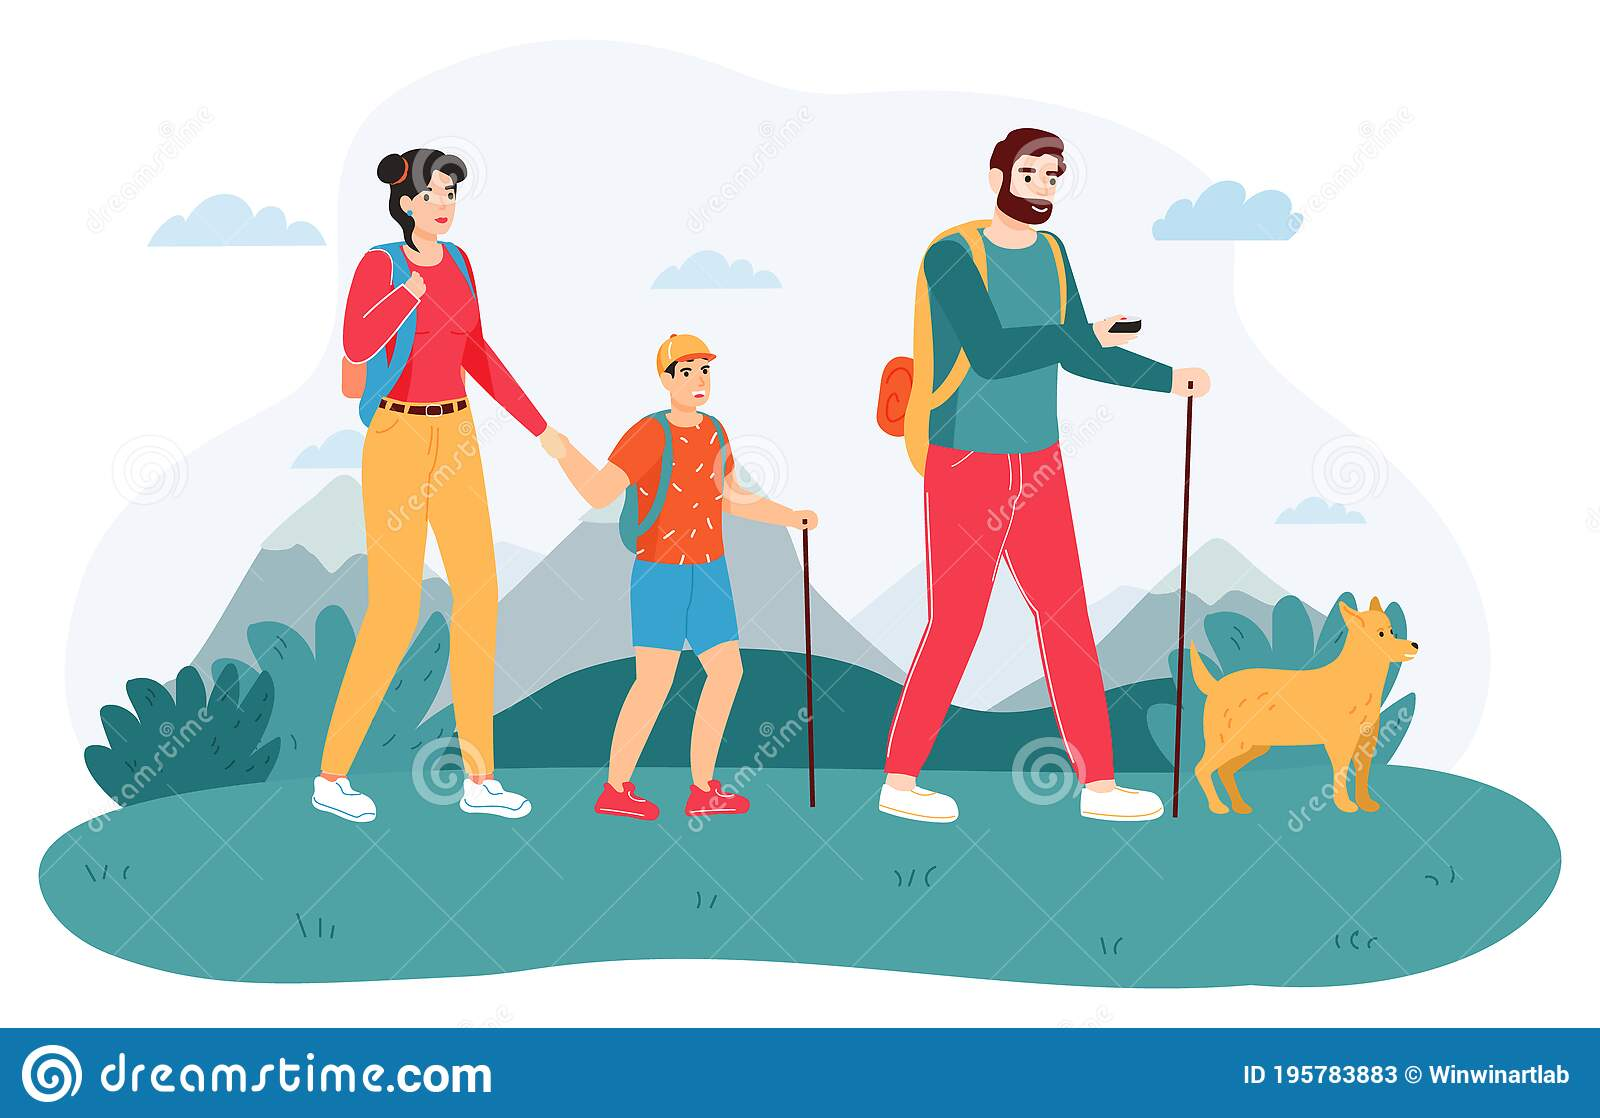 Family Outdoor Journey. Happy Hiking Family, Active Adventure Tourism,  Active Tourists, Travel Trekking Family With Kid Stock Vector -  Illustration of landscape, active: 195783883